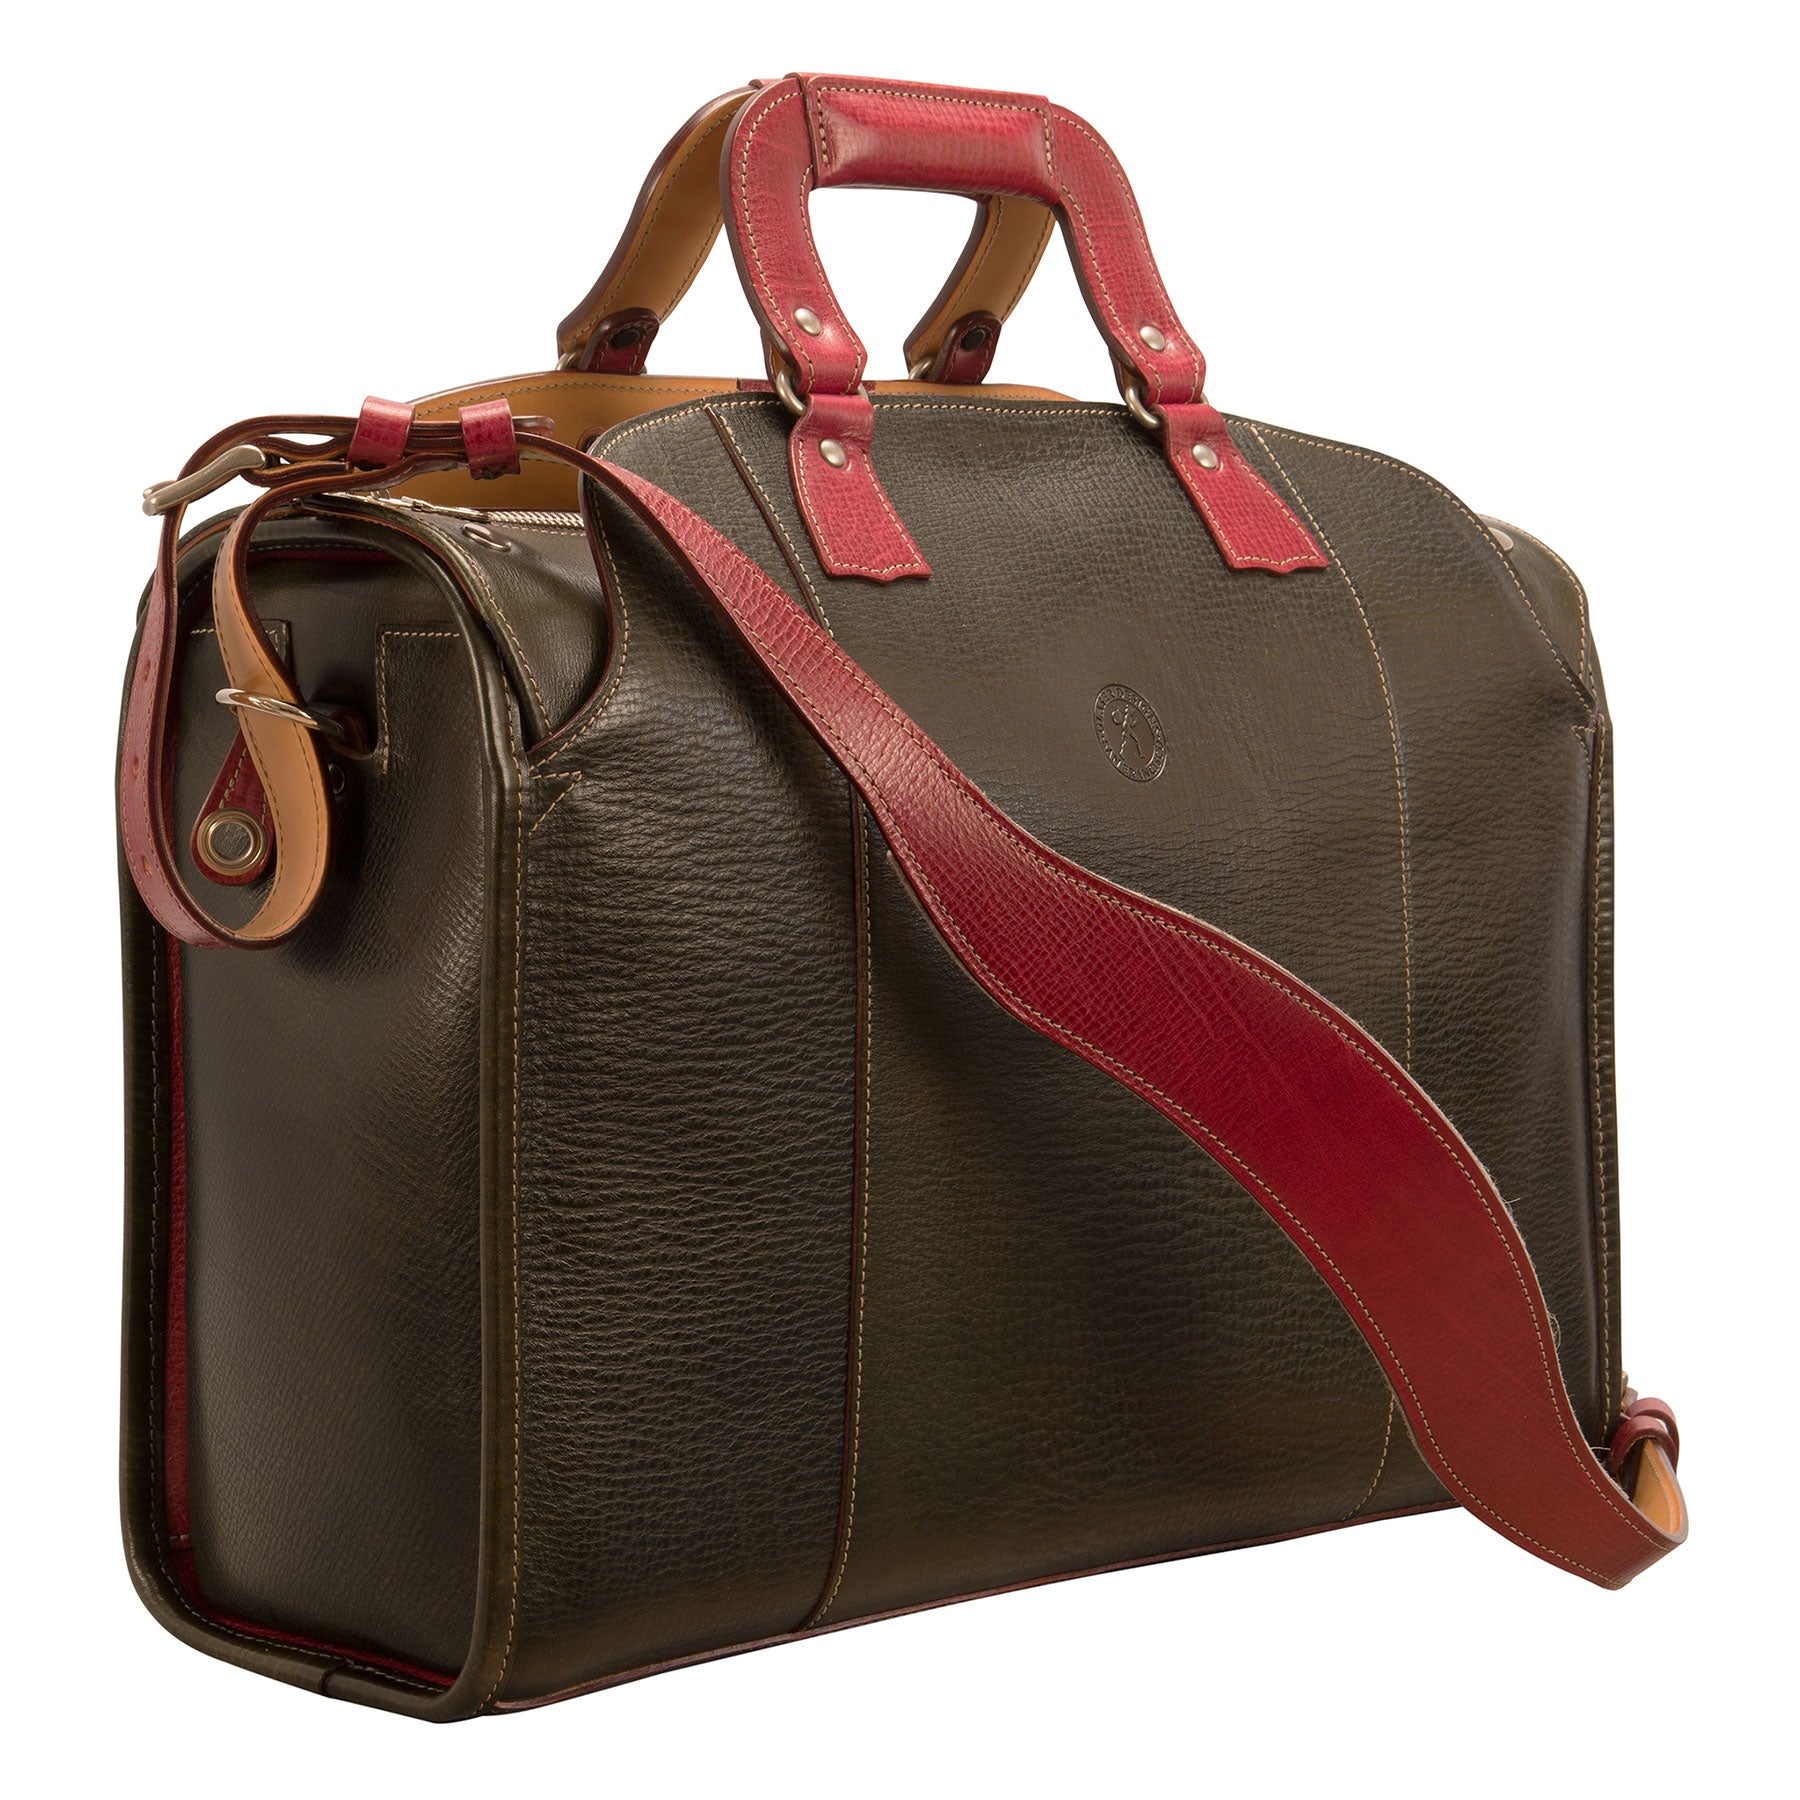 Travelers' Briefcase: Hand-Grained, Hand-Colored Leather